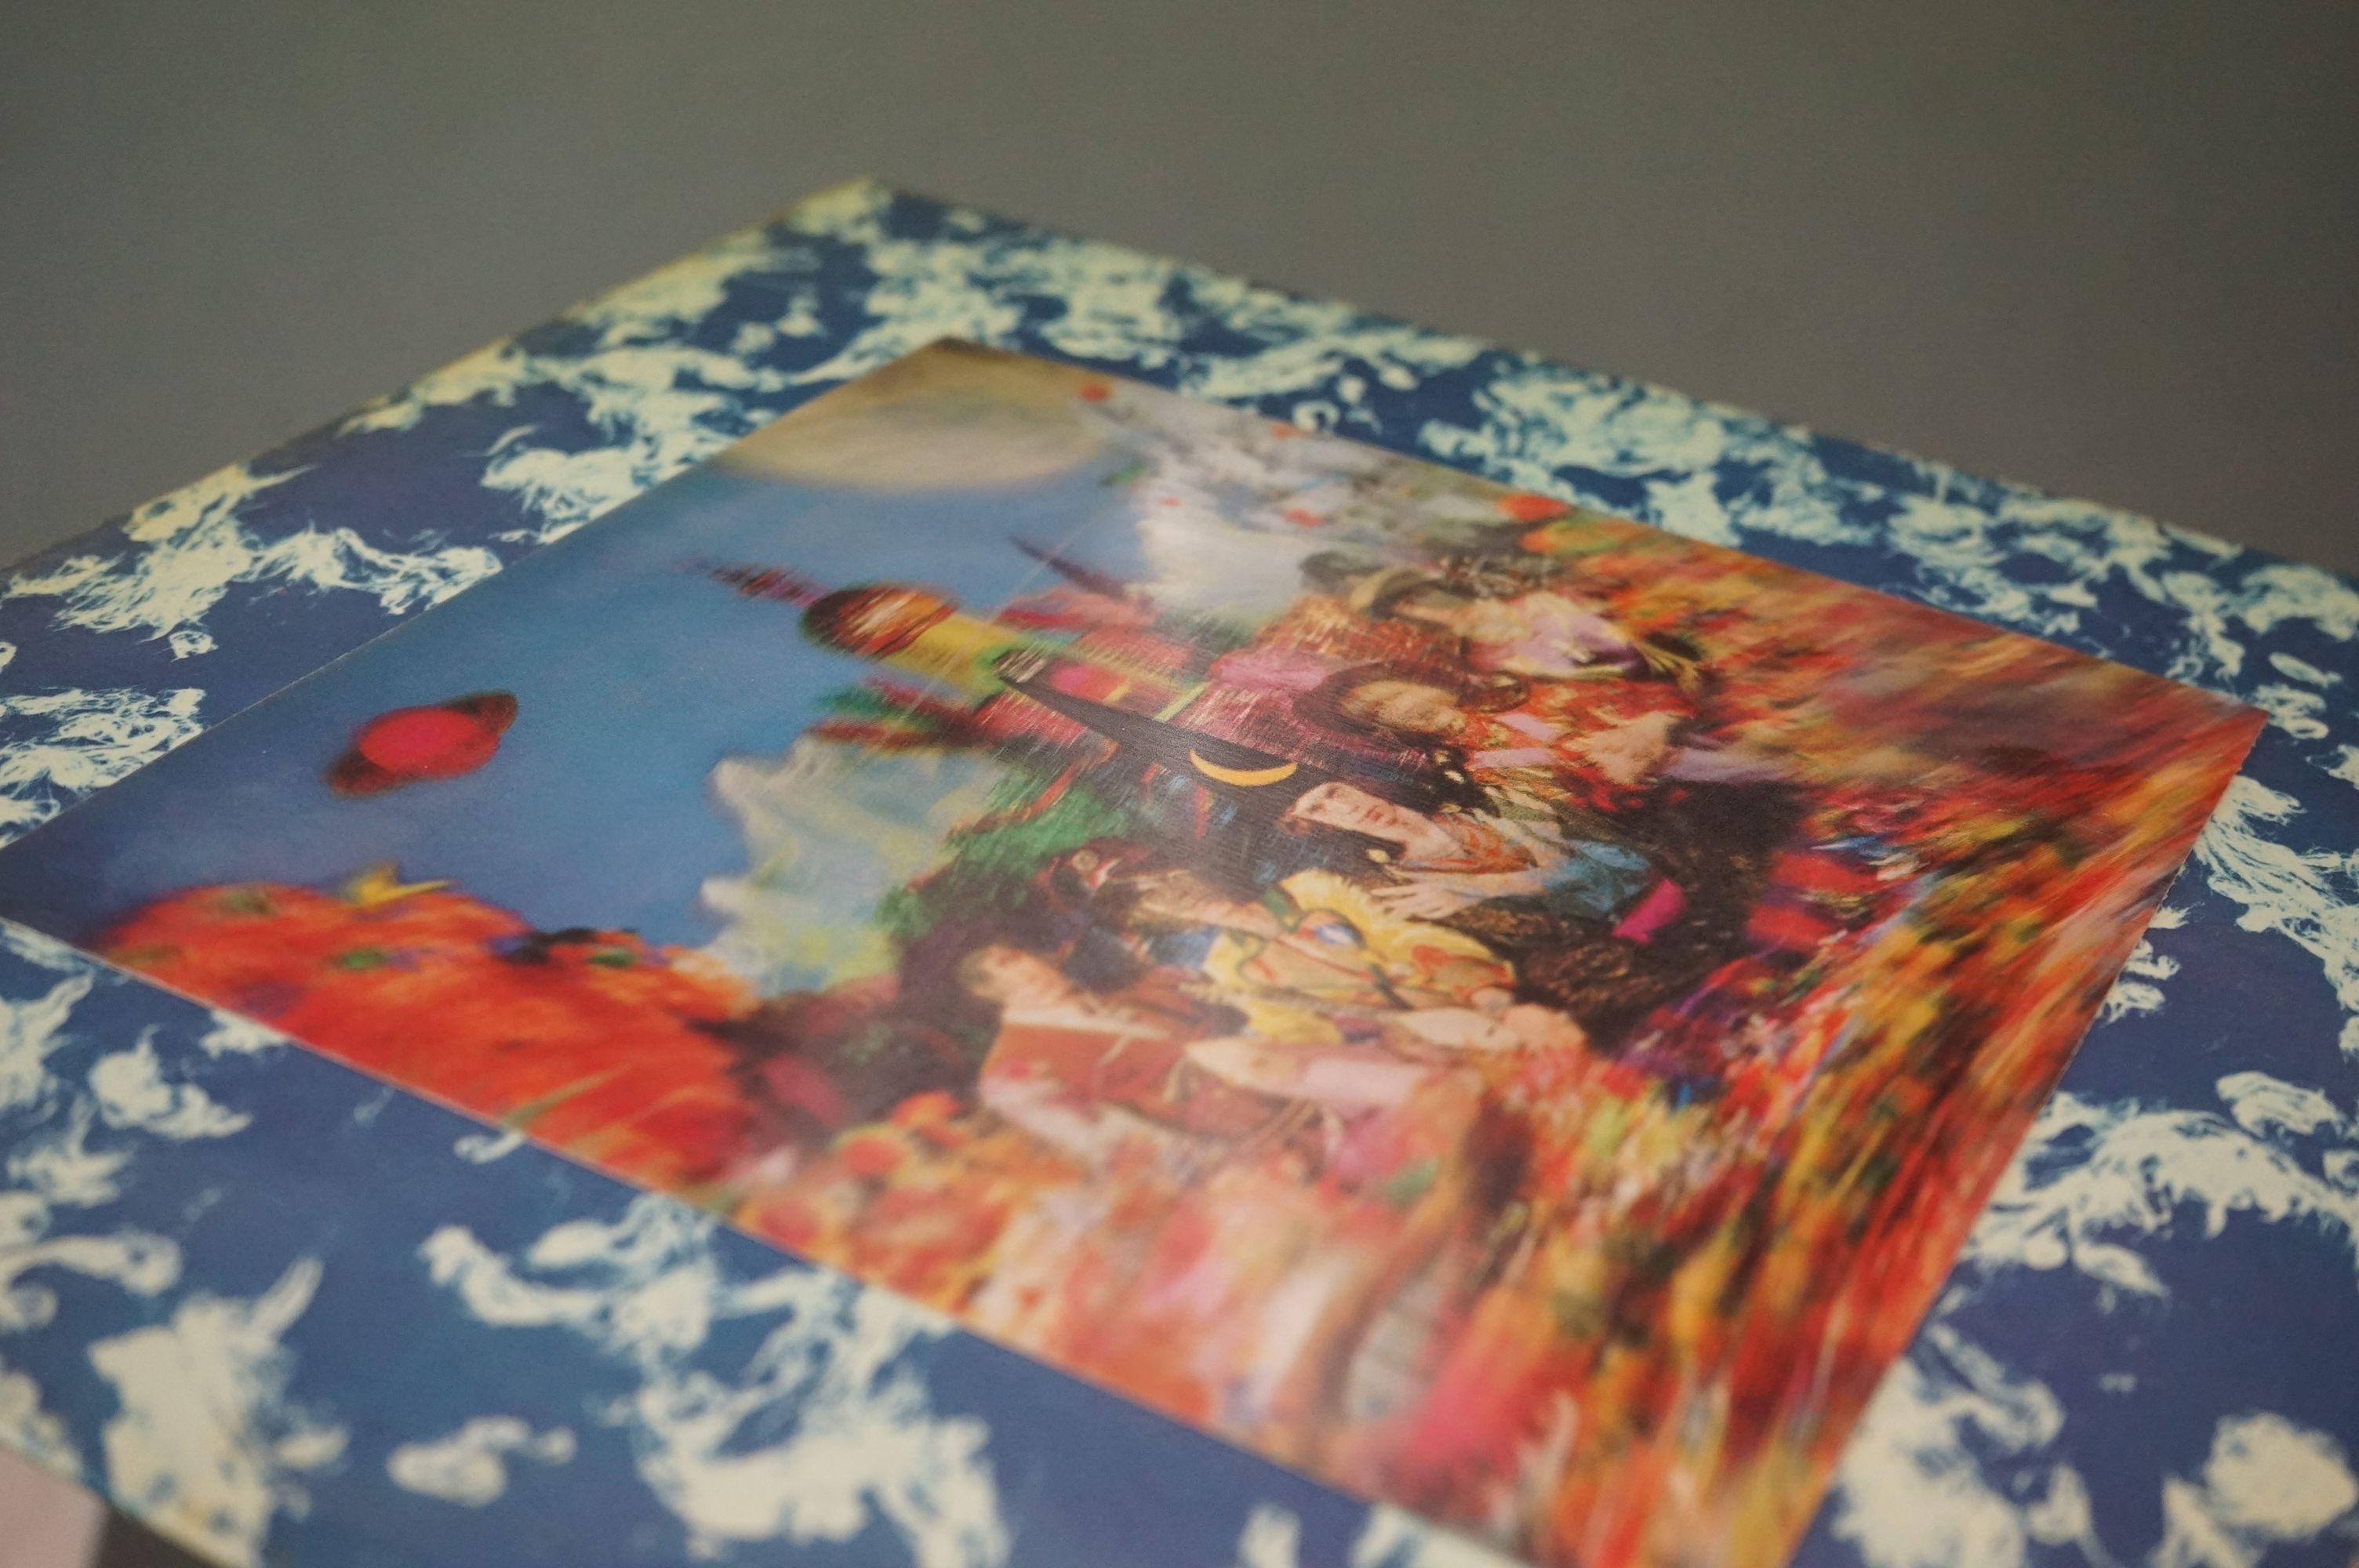 Vinyl - The Rolling Stones Their Satanic Majesties Request TXS103, Decca unboxed green stereo label, - Image 7 of 7